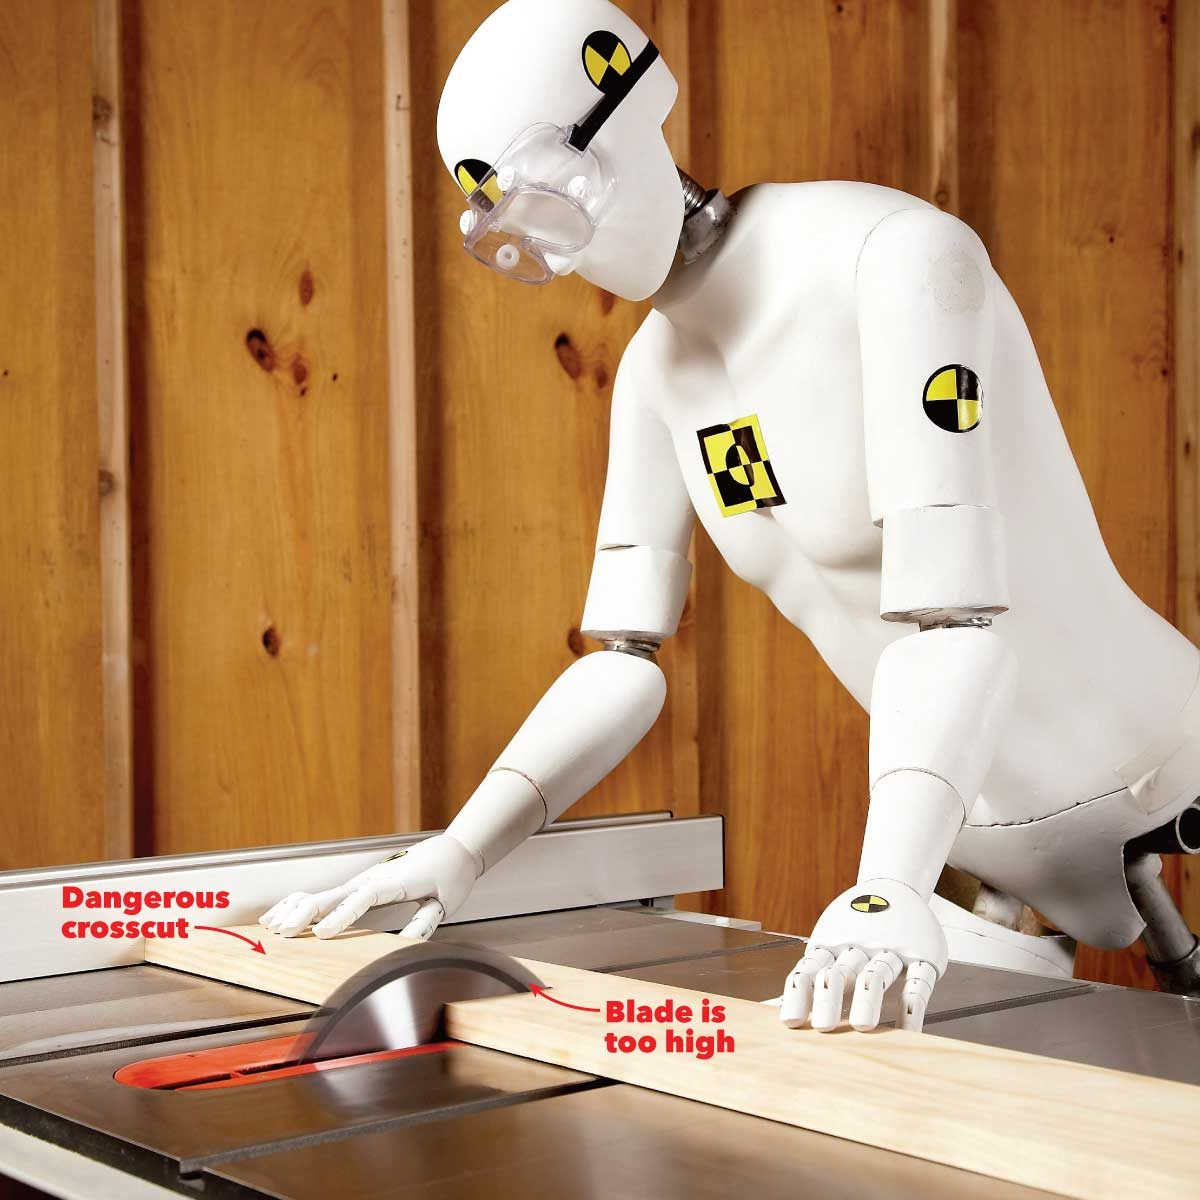 common safety injuries don't crosscut against the table saw fence